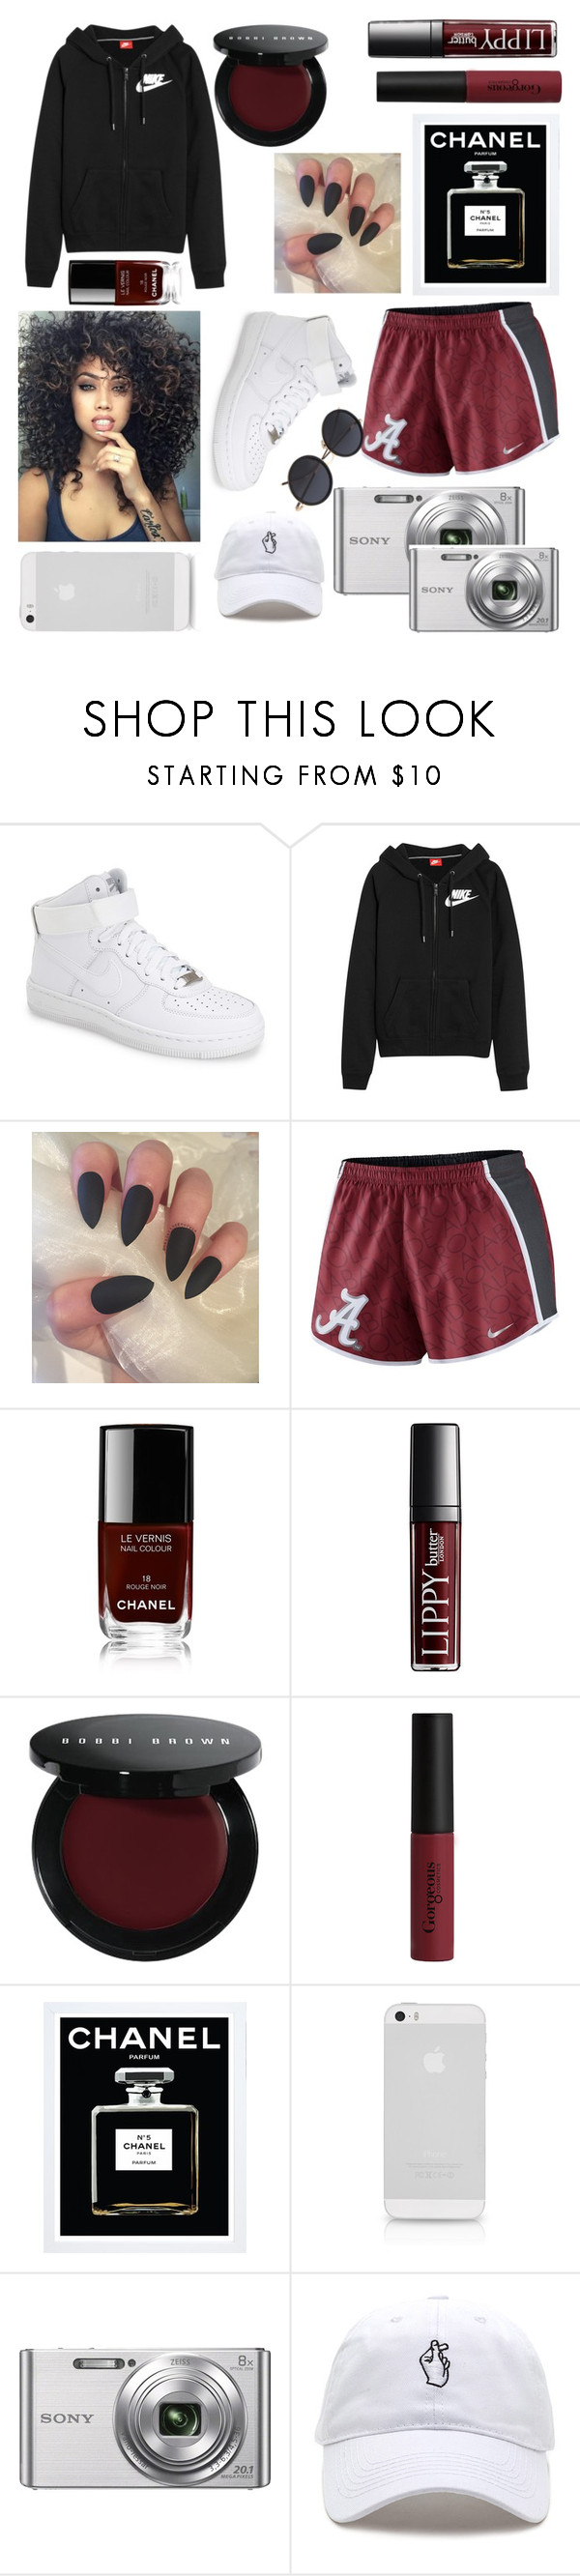 """Alabama"" by jaiylahmonae ❤ liked on Polyvore featuring NIKE, Chanel, Bobbi Brown Cosmetics, Gorgeous Cosmetics and Sony"